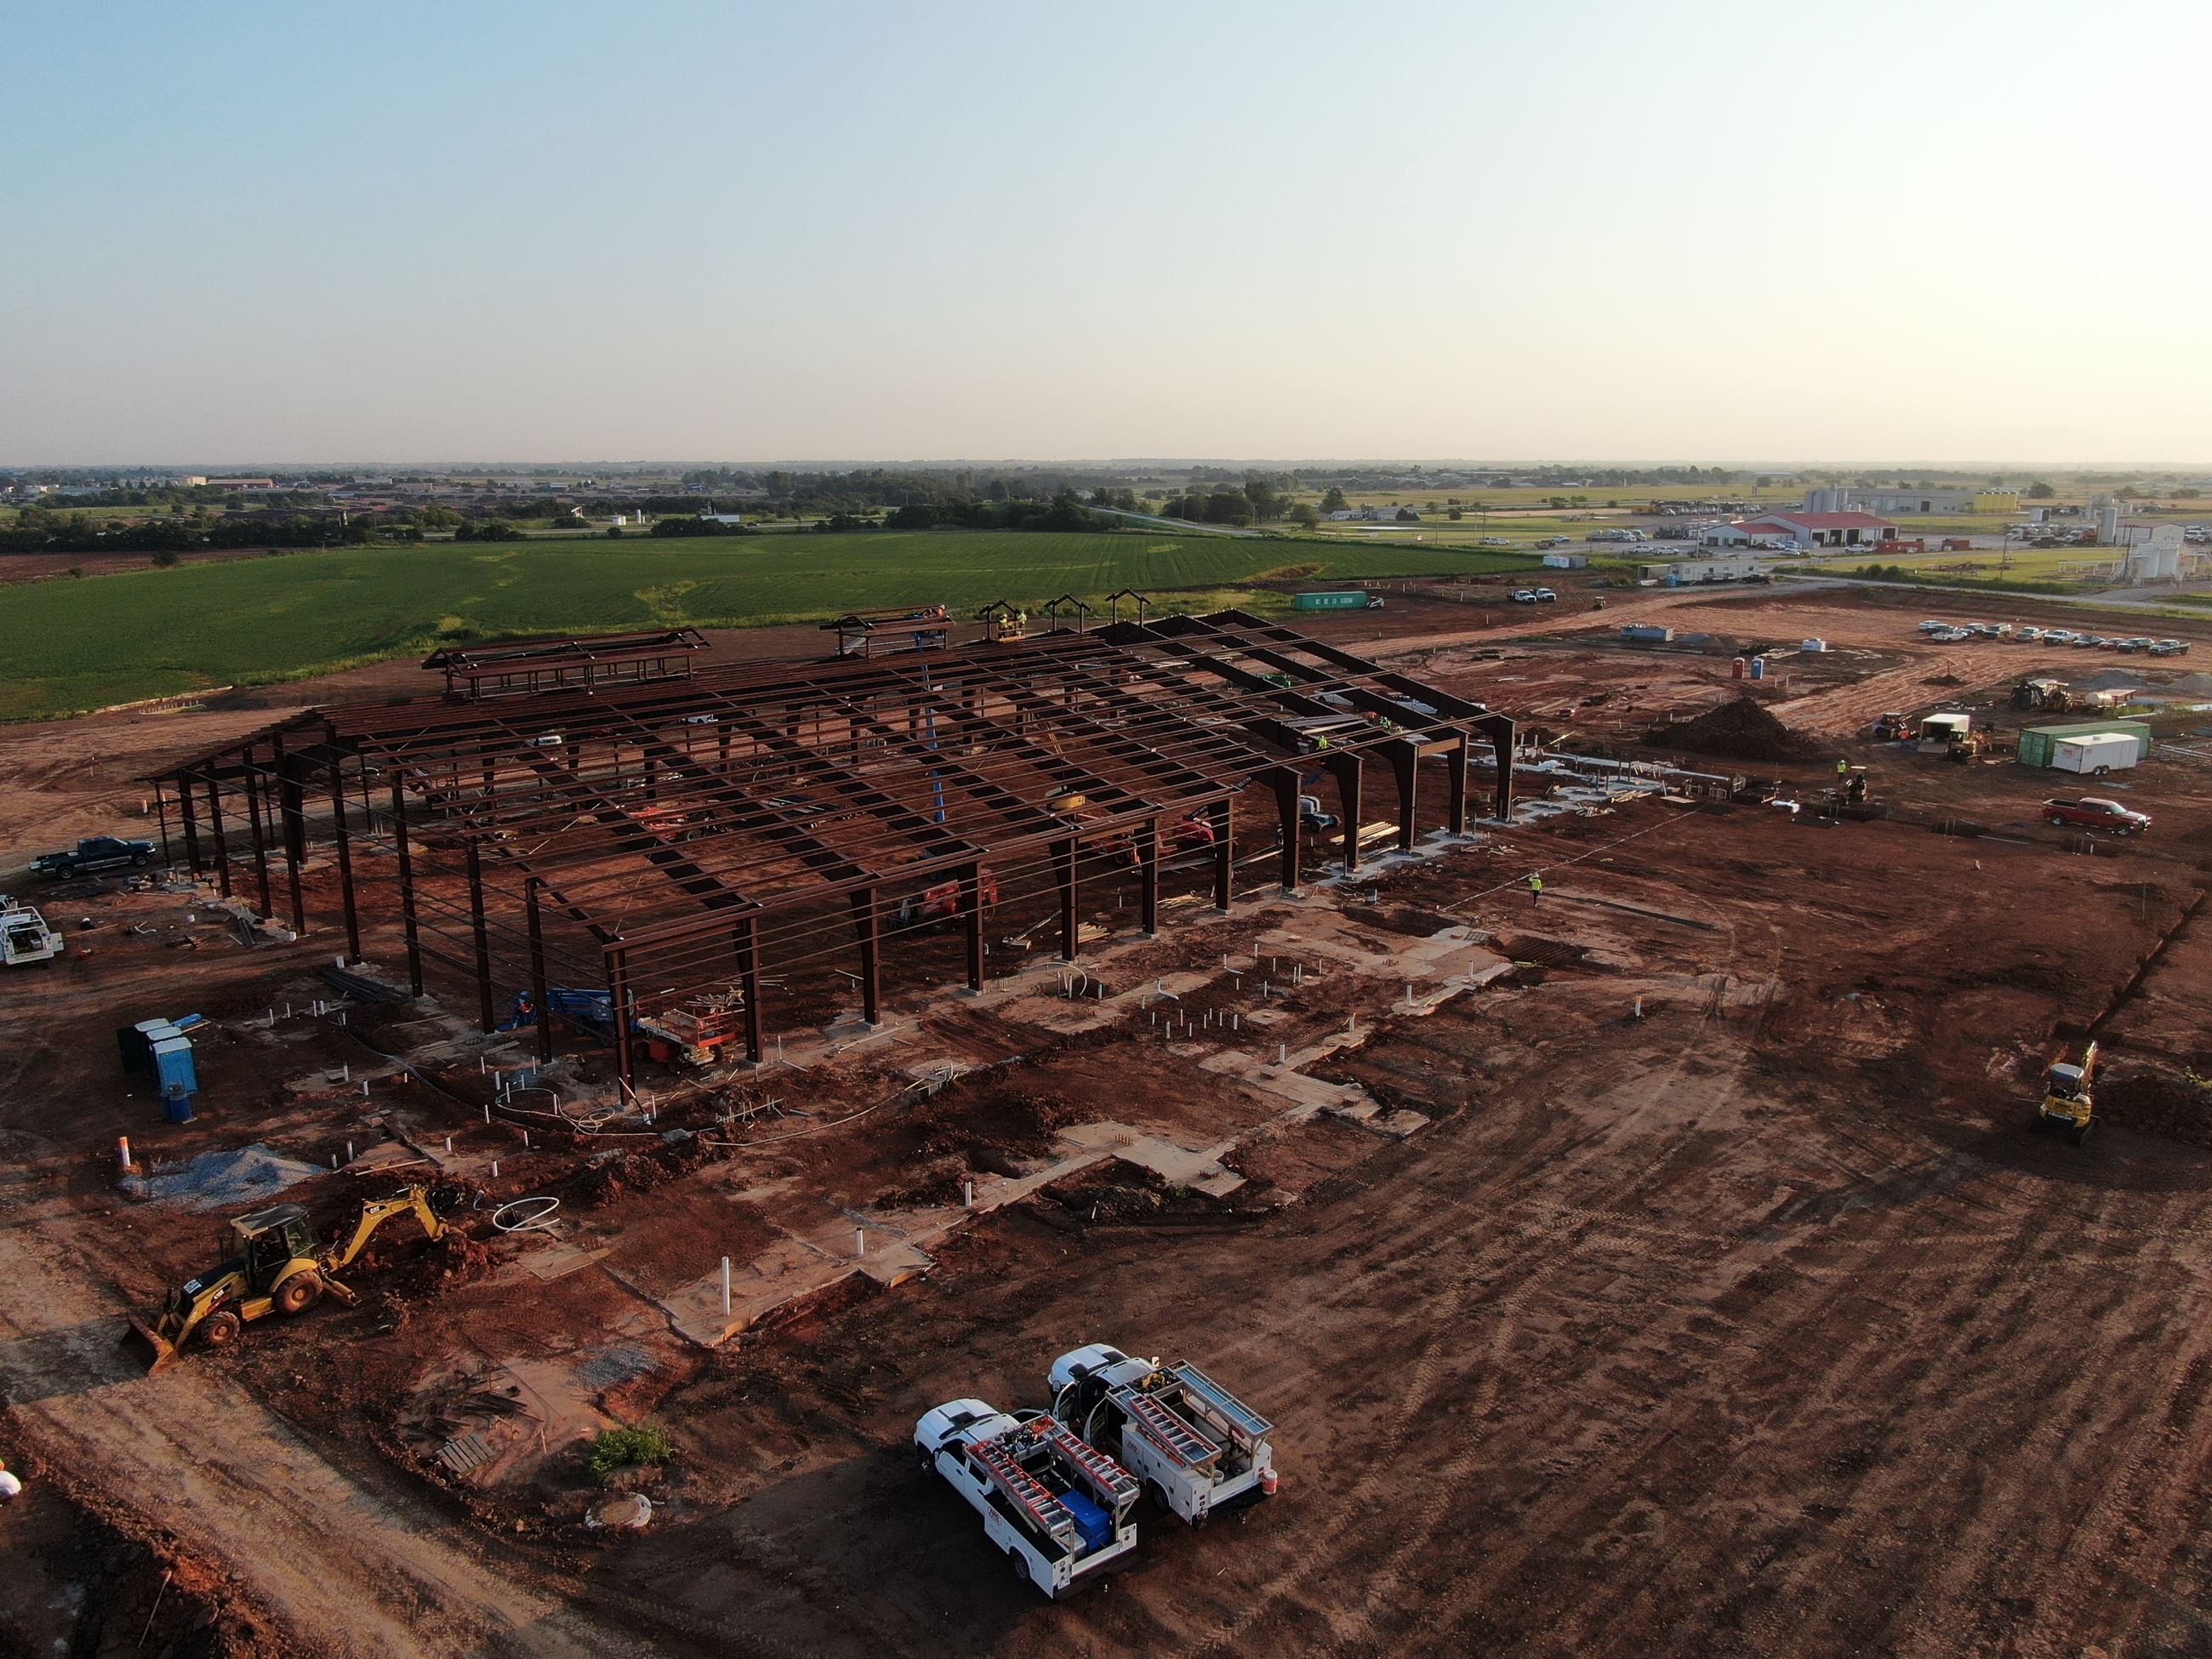 Drone shot looking North East at arena construction